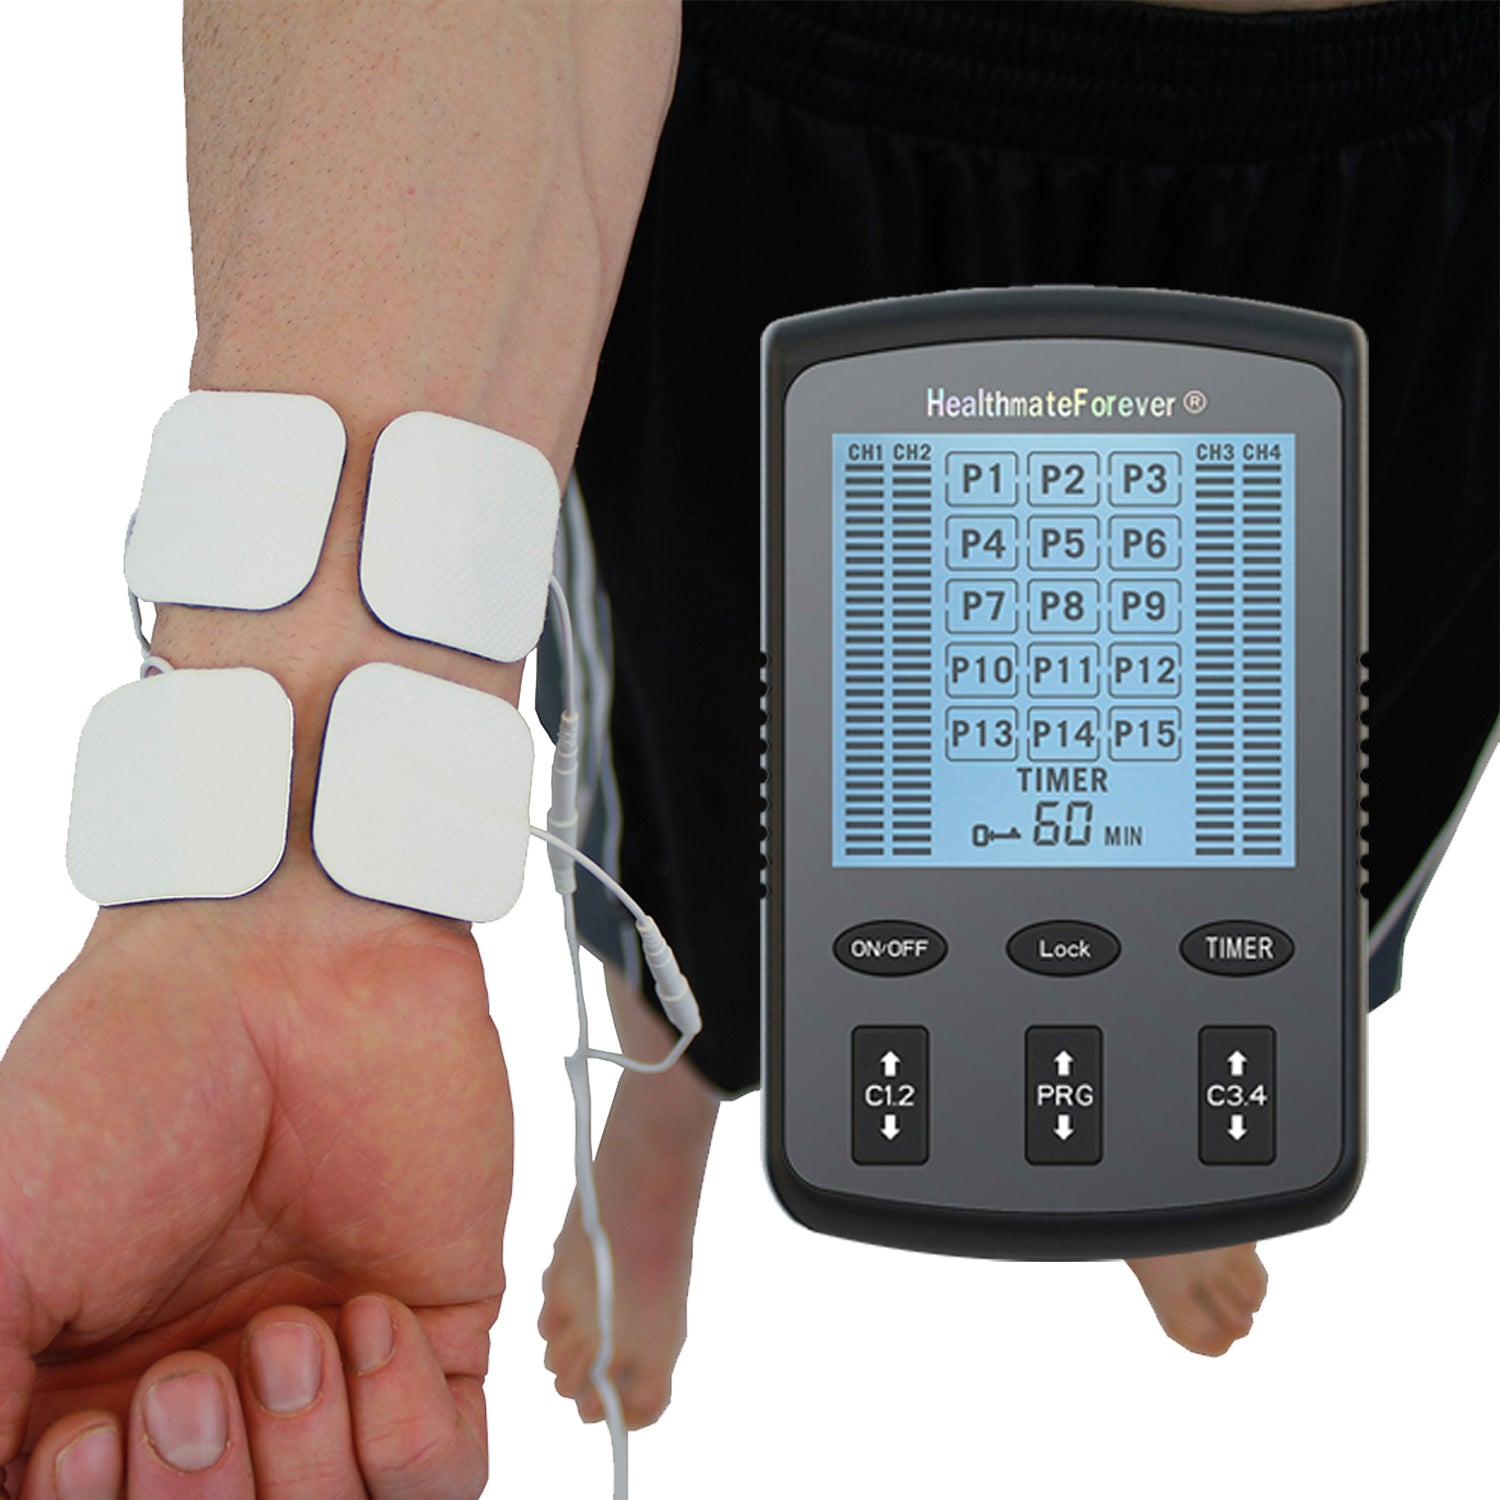 2019 Version ZT15AB Powerful Electrotherapy Pain Relief TENS UNIT - HealthmateForever